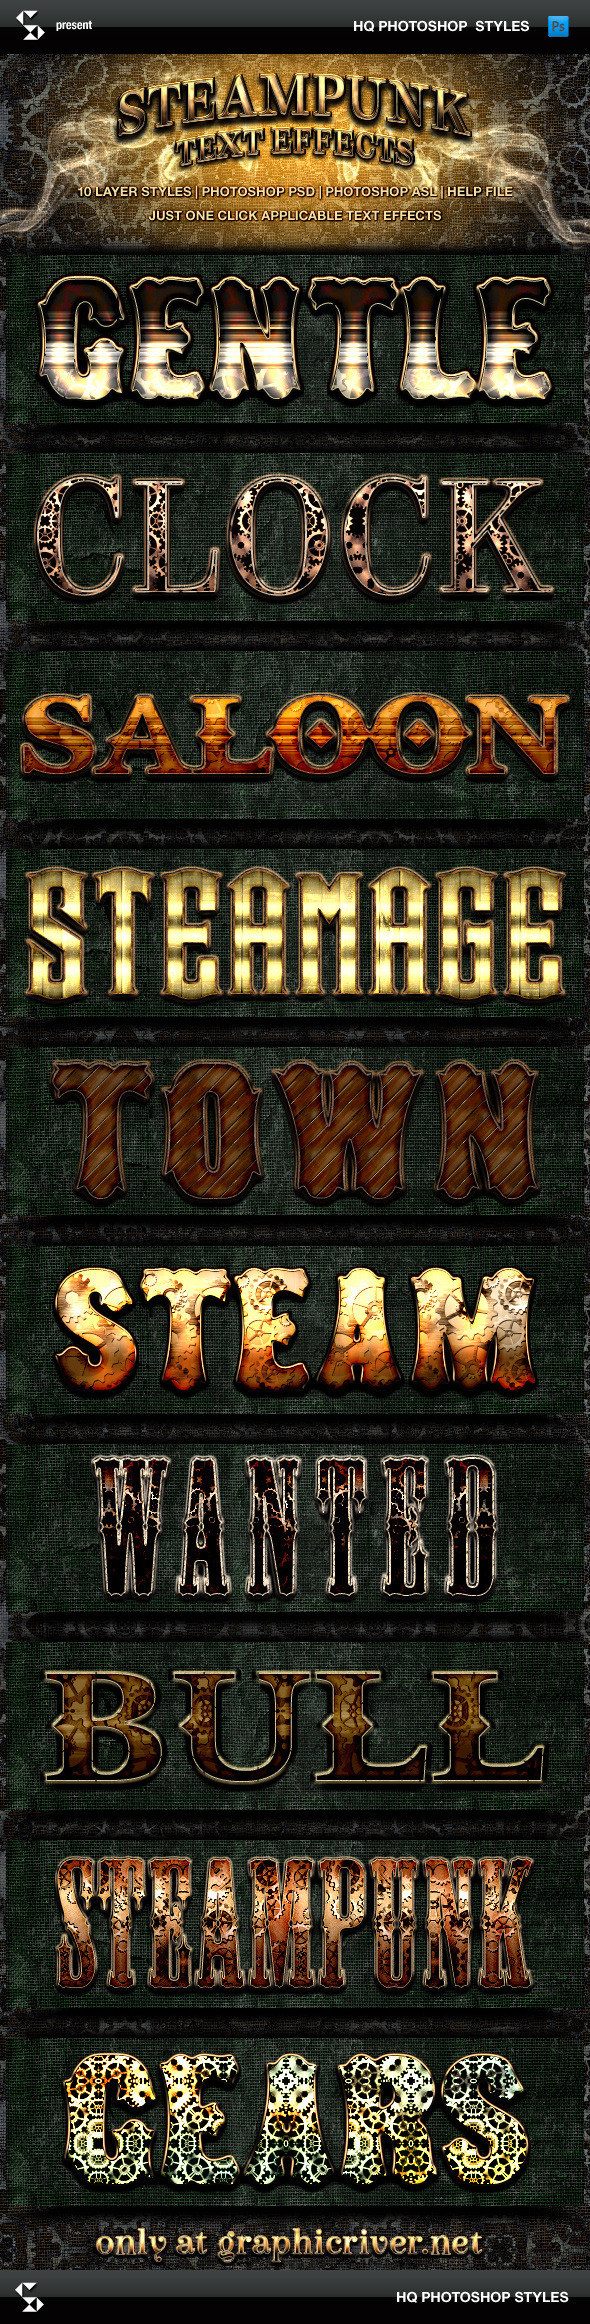 GraphicRiver Steampunk Text Effects 9020781